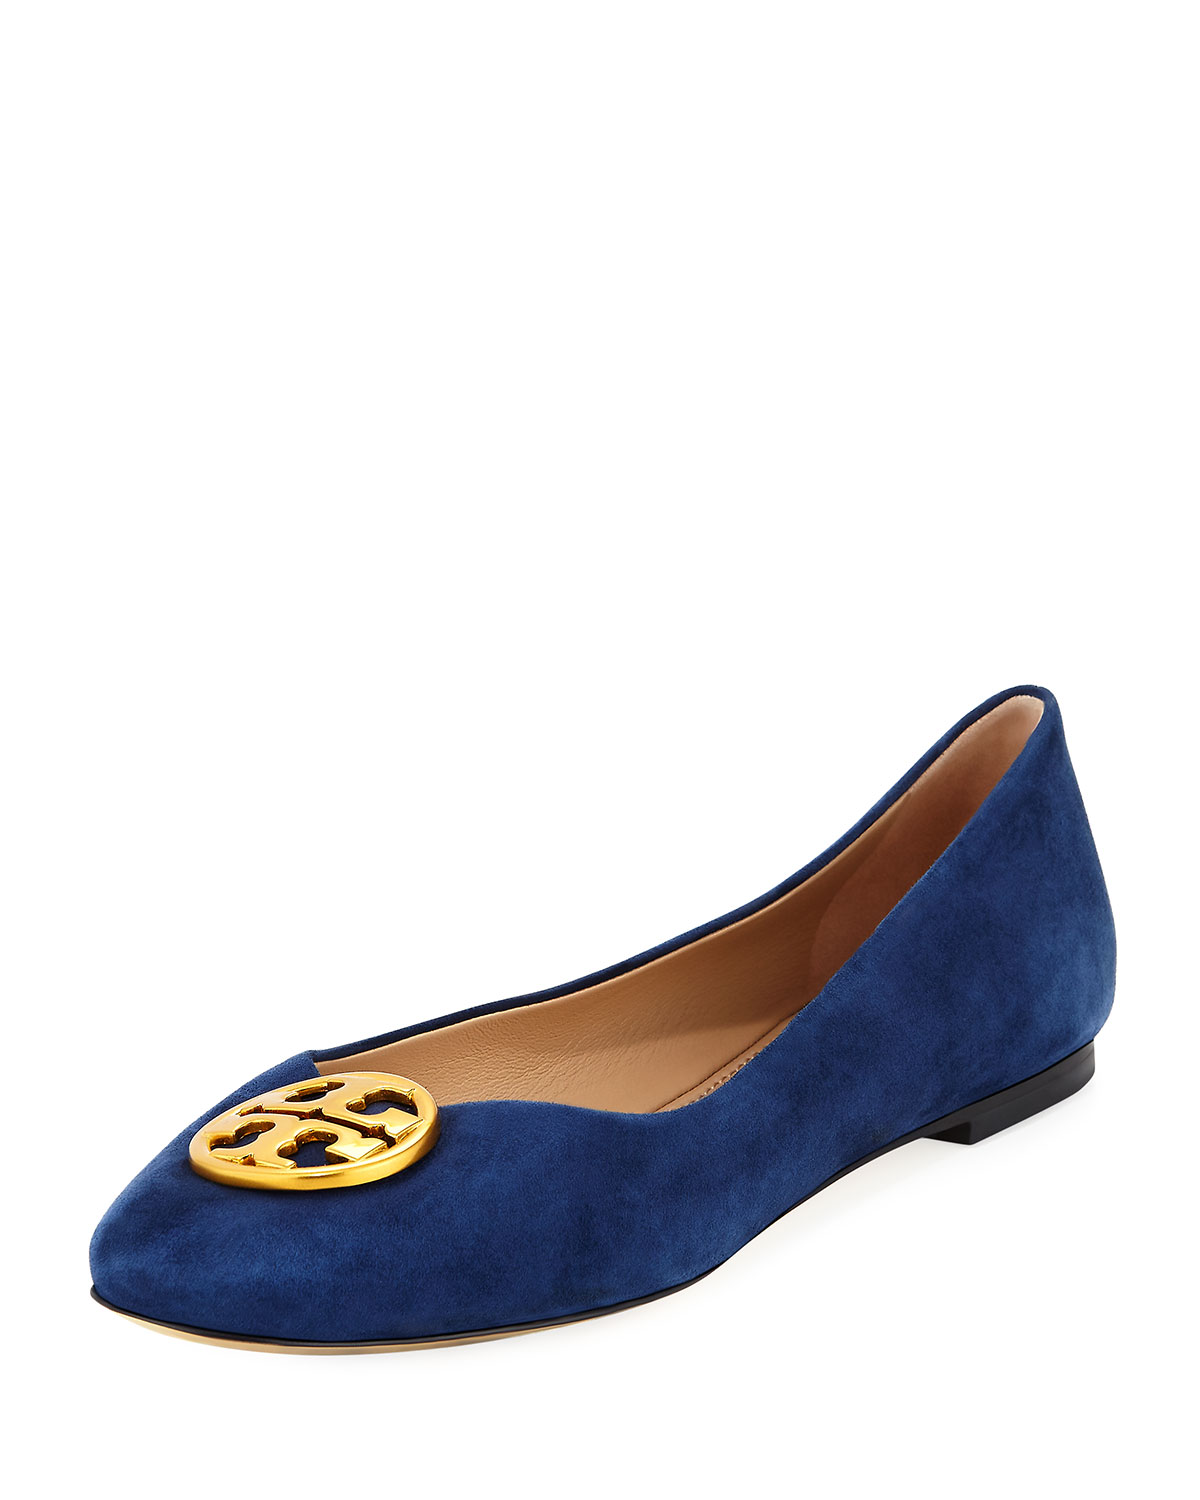 4c52a702c Tory Burch Chelsea Suede Ballet Flat